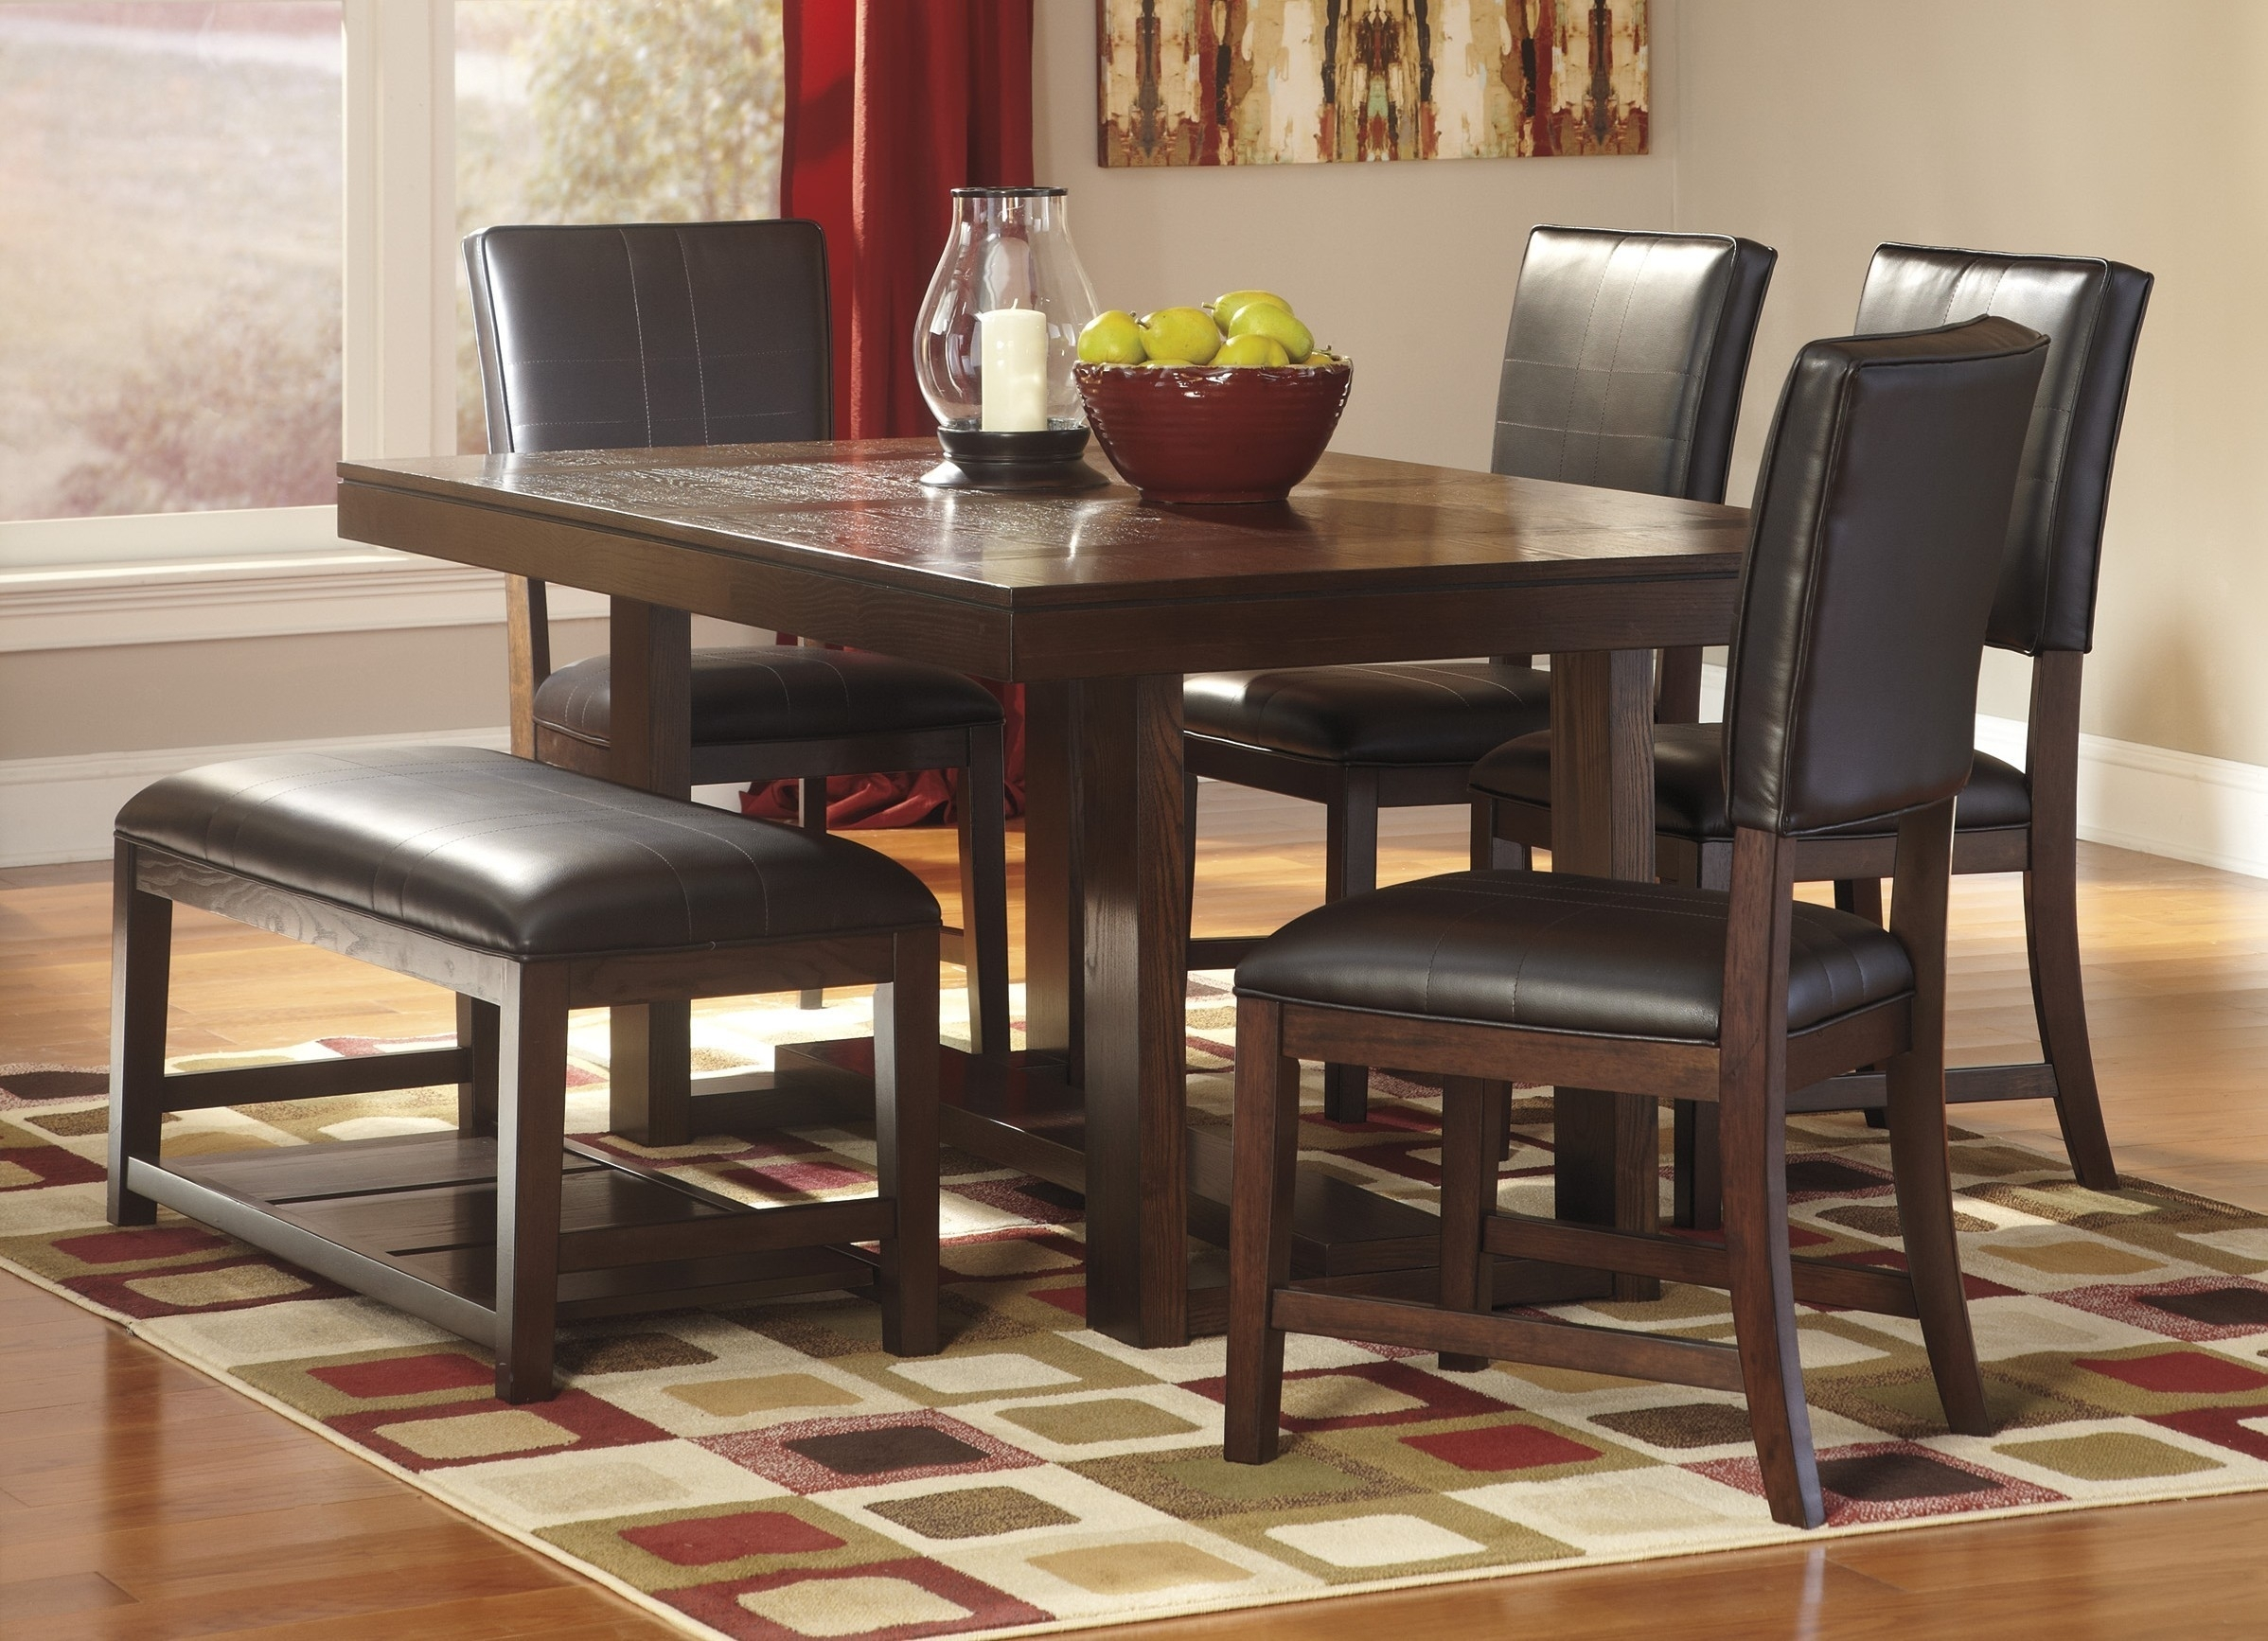 Furniture : Ideas Collection Ashley Furniture Dining Room Sets For For Sofa Chairs With Dining Table (View 7 of 10)